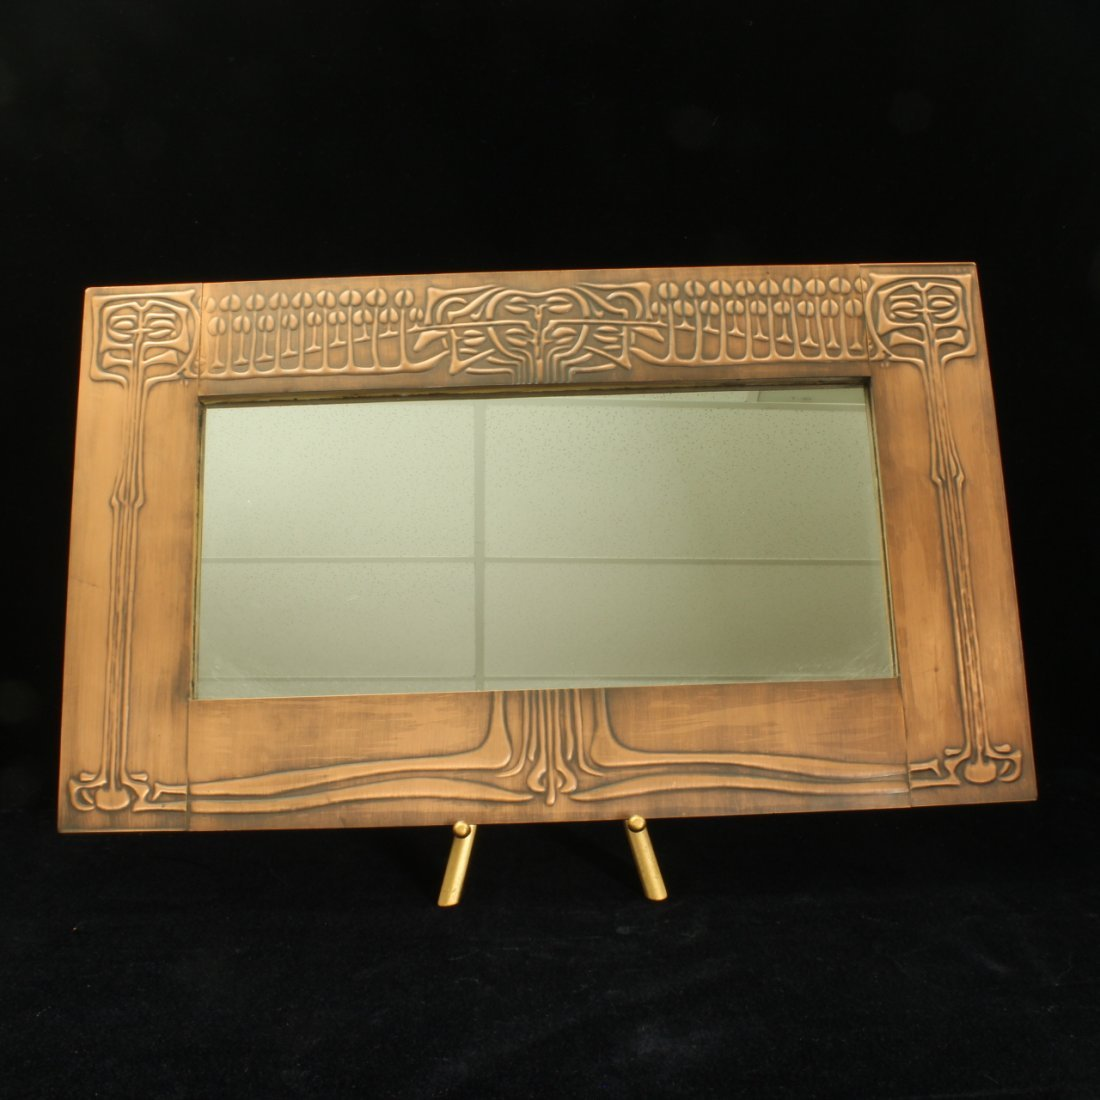 Art Nouveau style Copper framed Mirror - 3